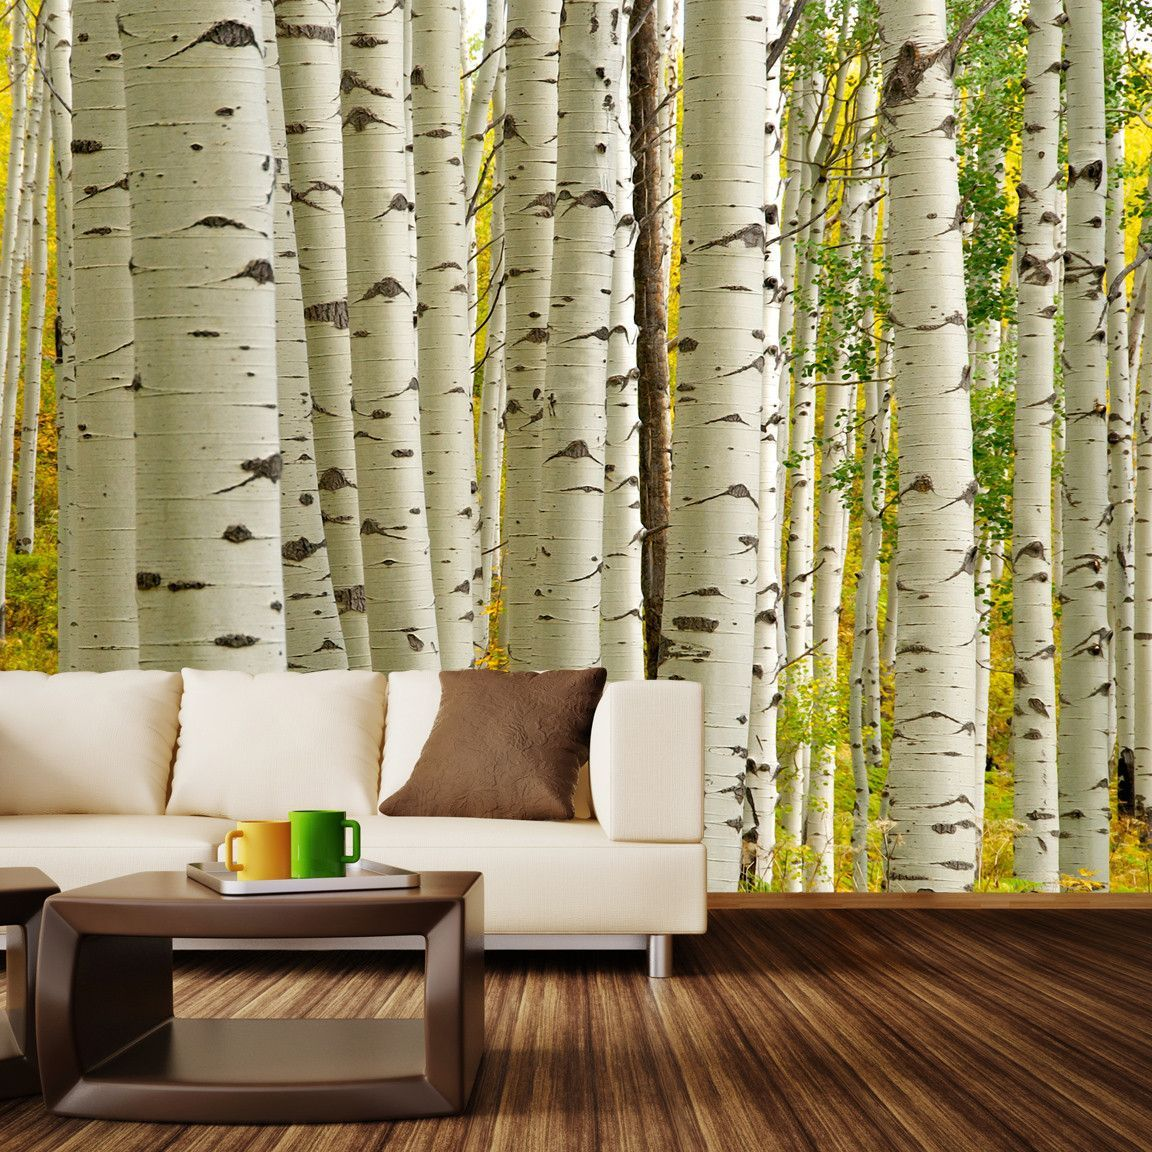 One for the dreamers wall mural decal wall mural decals for Birch tree forest wall mural